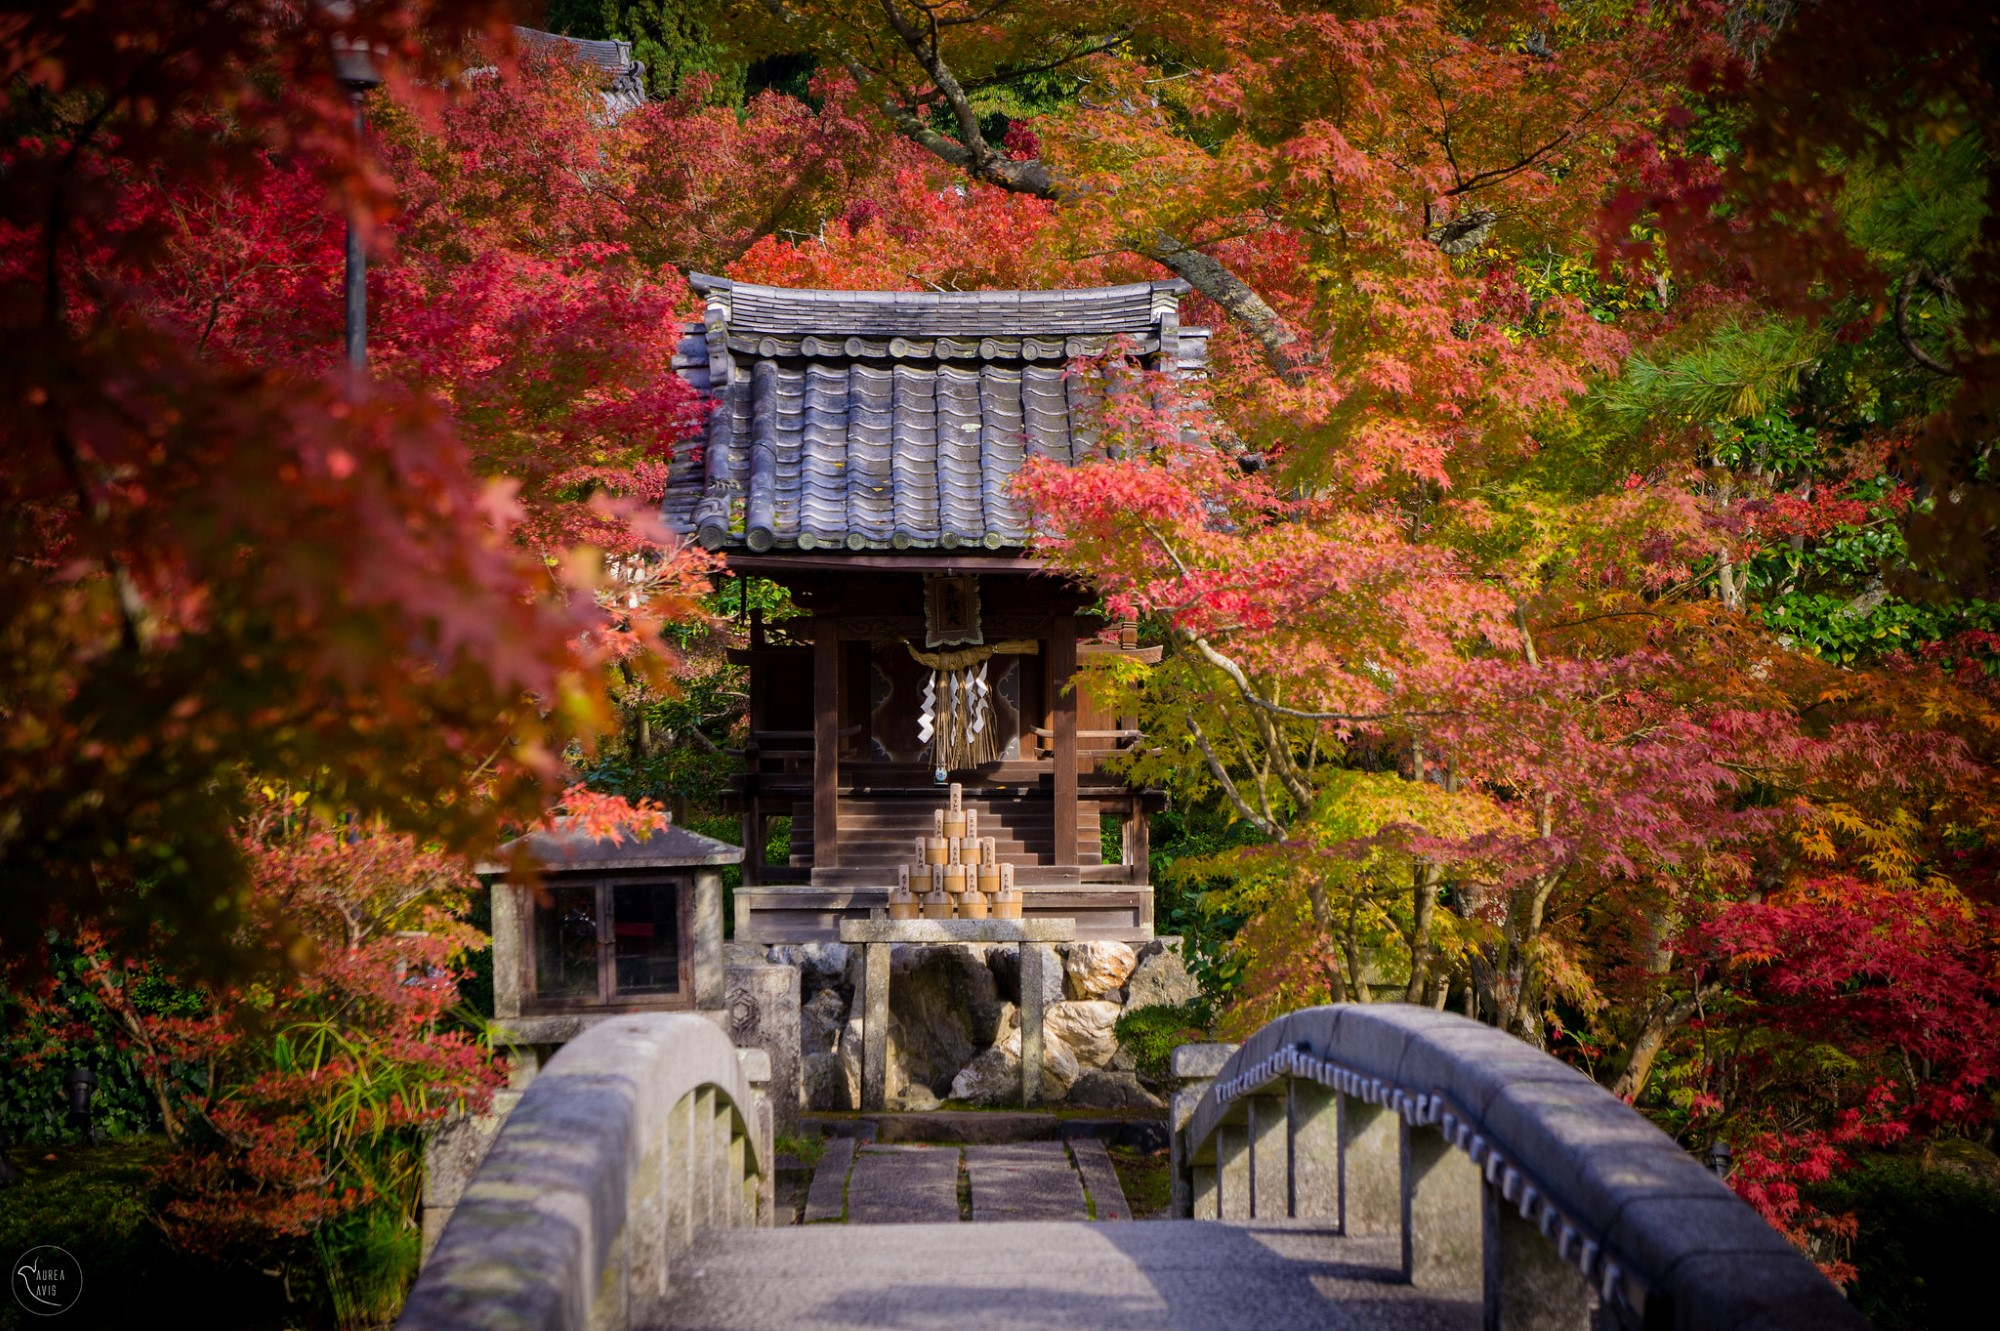 Fall leaves at Eikando Temple. Credit: aurea-avis. Licensed under CC BY-ND 2.0.